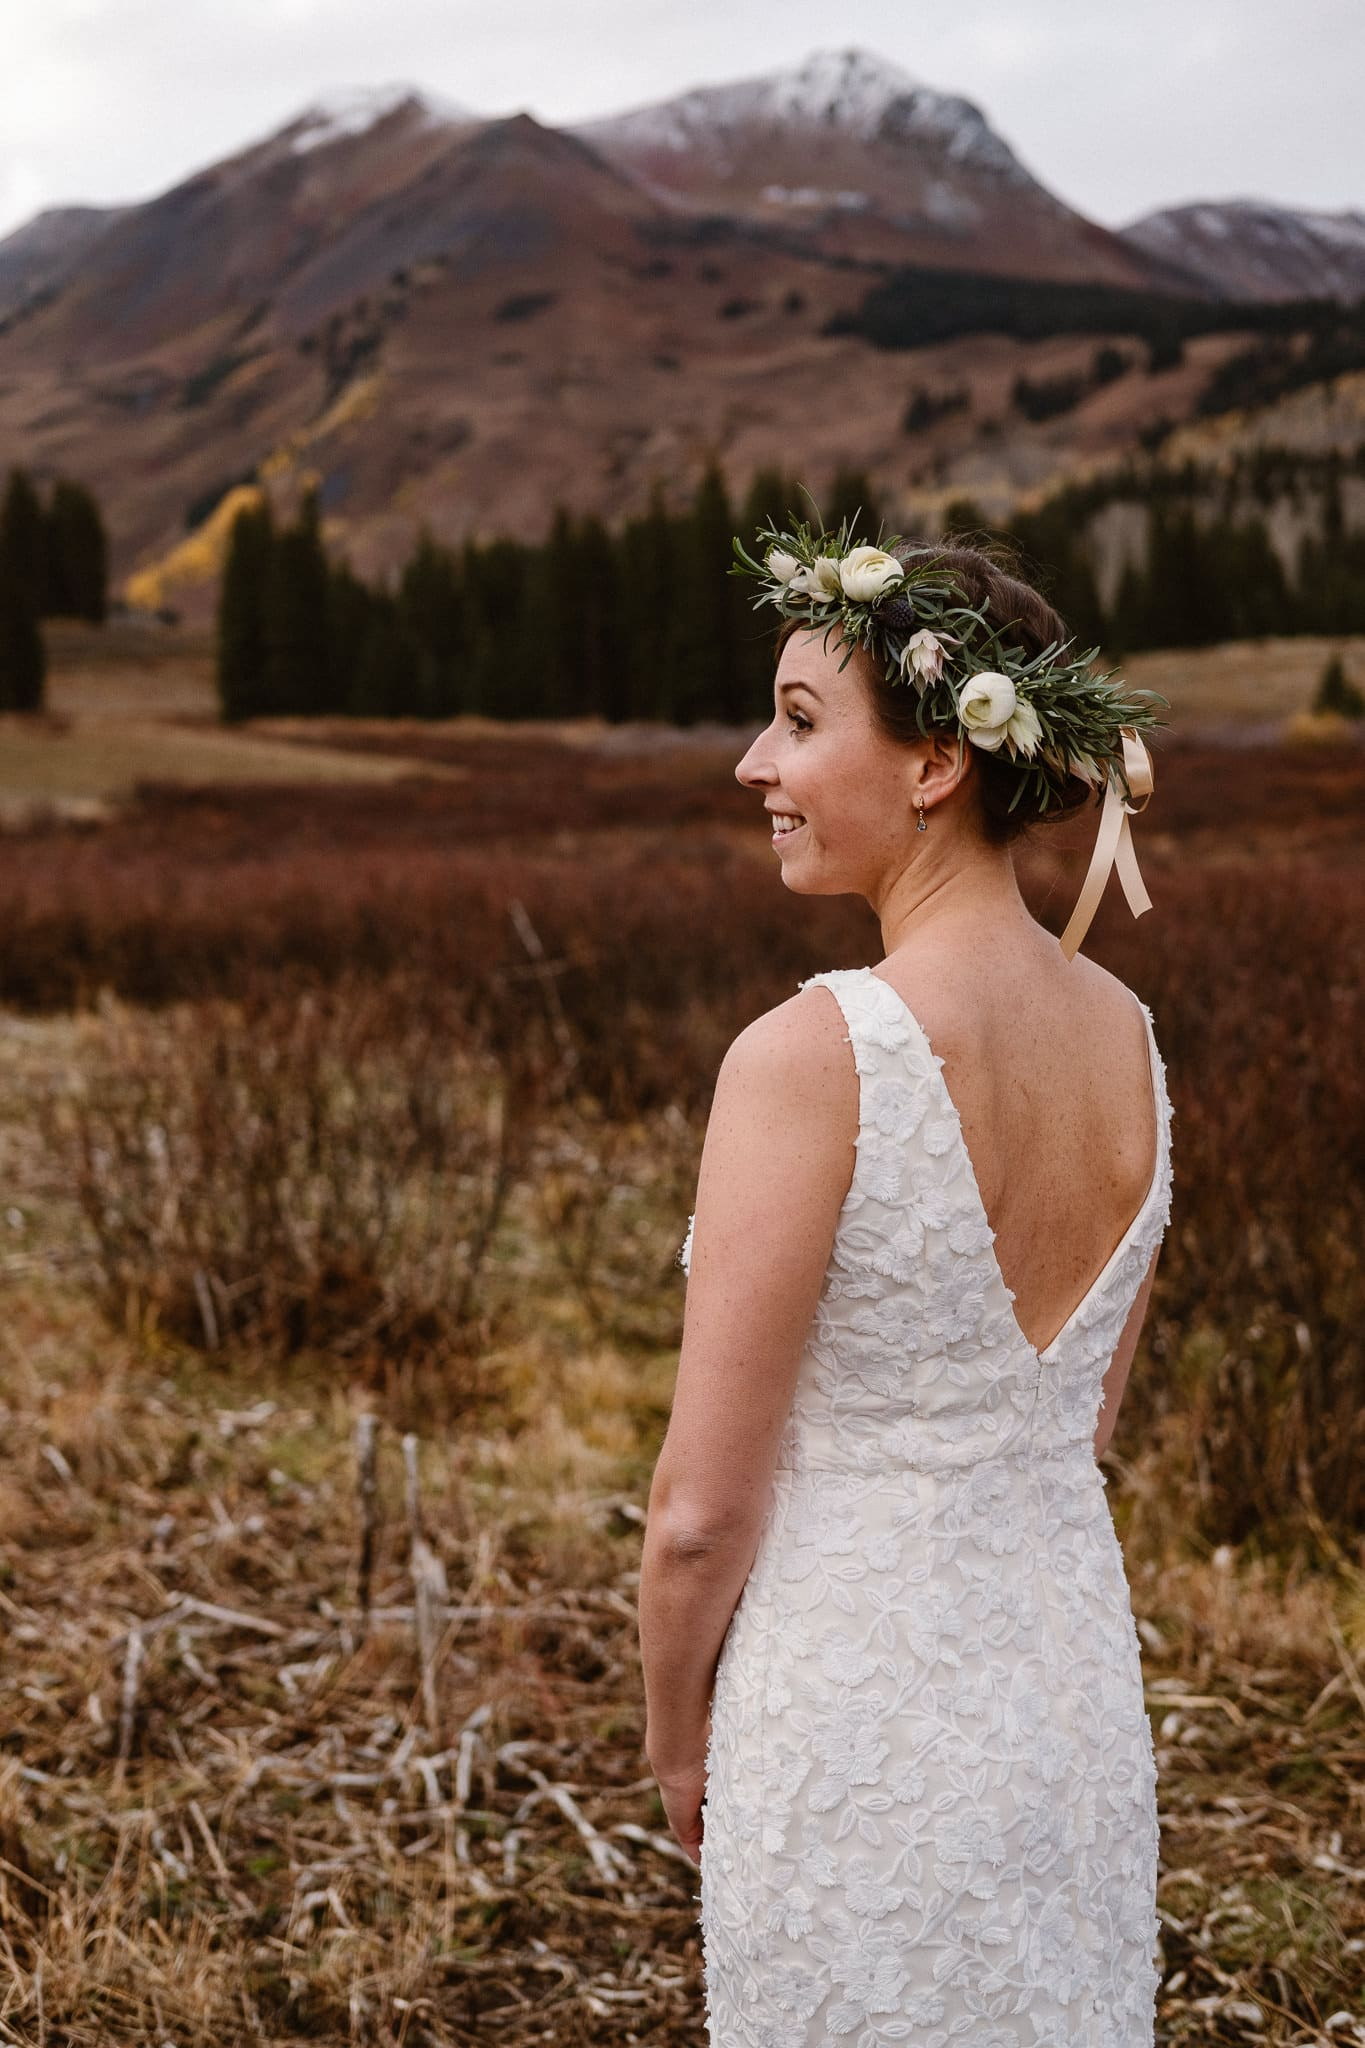 Crested Butte Wedding Photographer, Scarp Ridge Lodge intimate elopement, self solemnized elopement in Colorado, bride and groom portraits, Colorado mountain adventure wedding, bride wearing floral crown